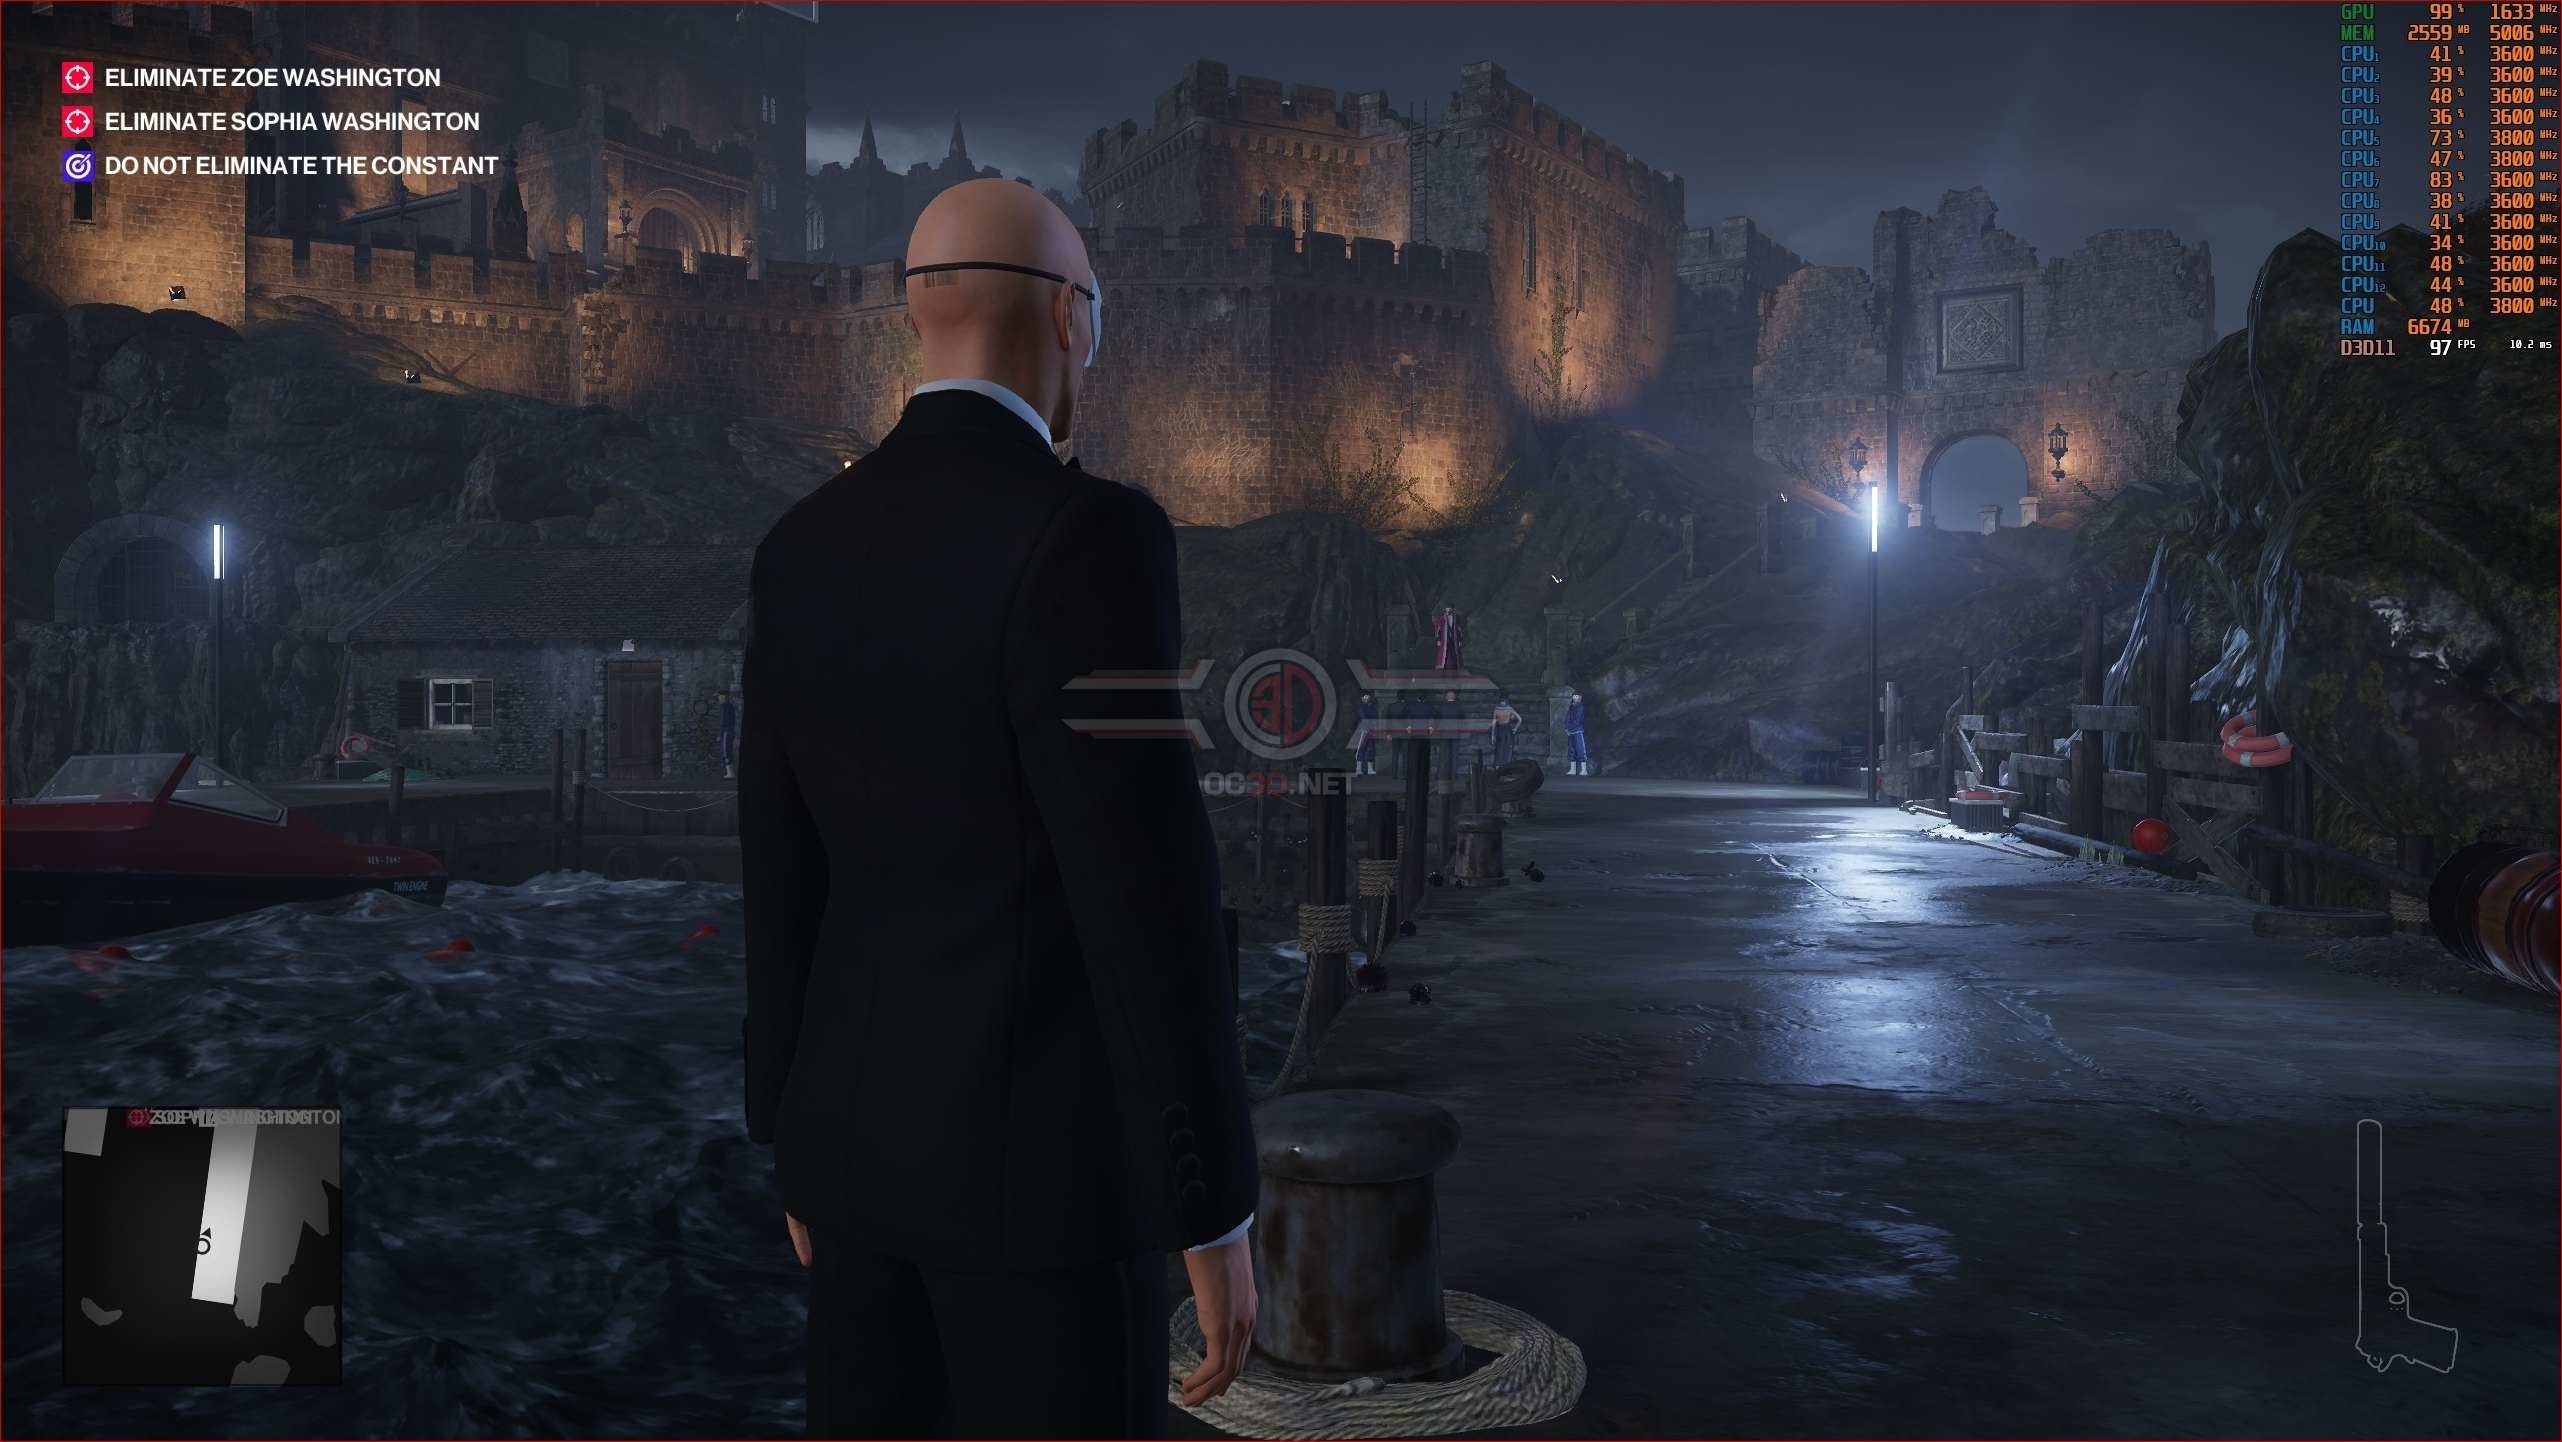 Hitman 2 Pc Performance Review Graphical Comparison Low To